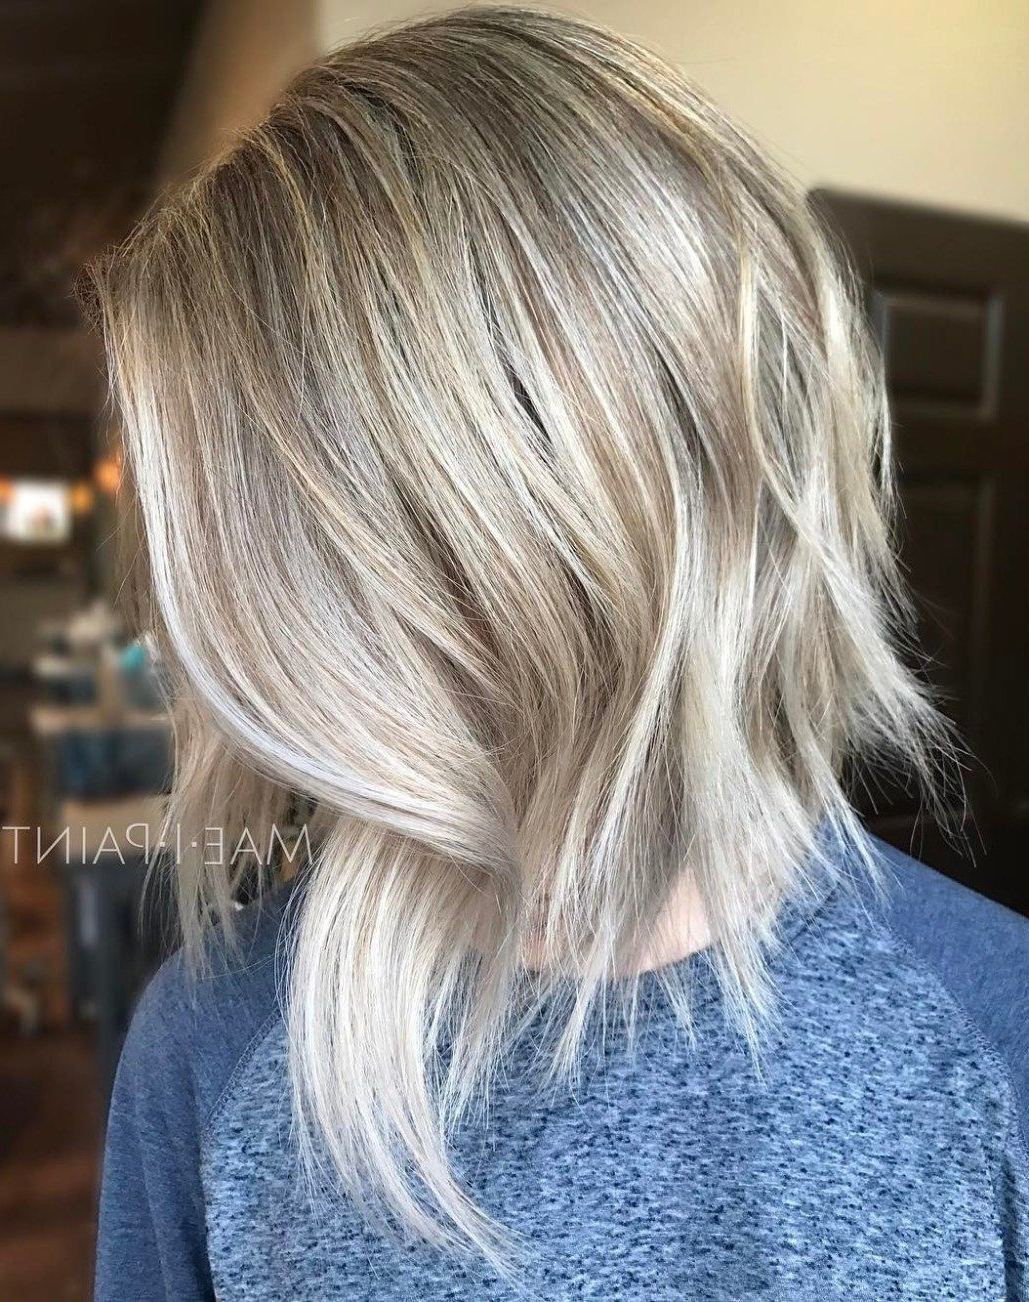 40 Chic Angled Bob Haircuts | Hair | Pinterest | Hair, Hair Cuts And With Dynamic Tousled Blonde Bob Hairstyles With Dark Underlayer (View 7 of 20)